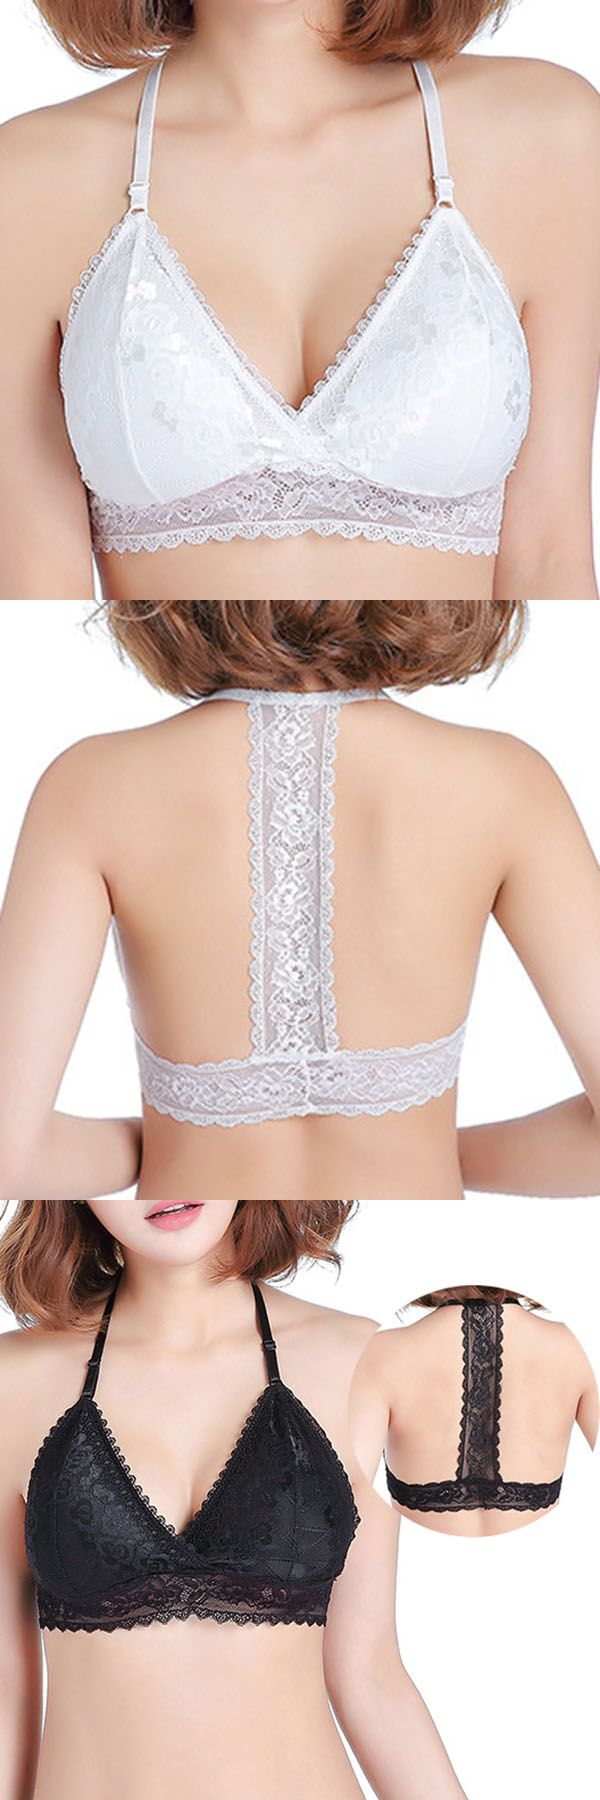 US$5.89+Free shipping. Sexy Bra, Lace-trim Bra, Deep V Bra, Special Design, Backless, Seamless, Breathable.